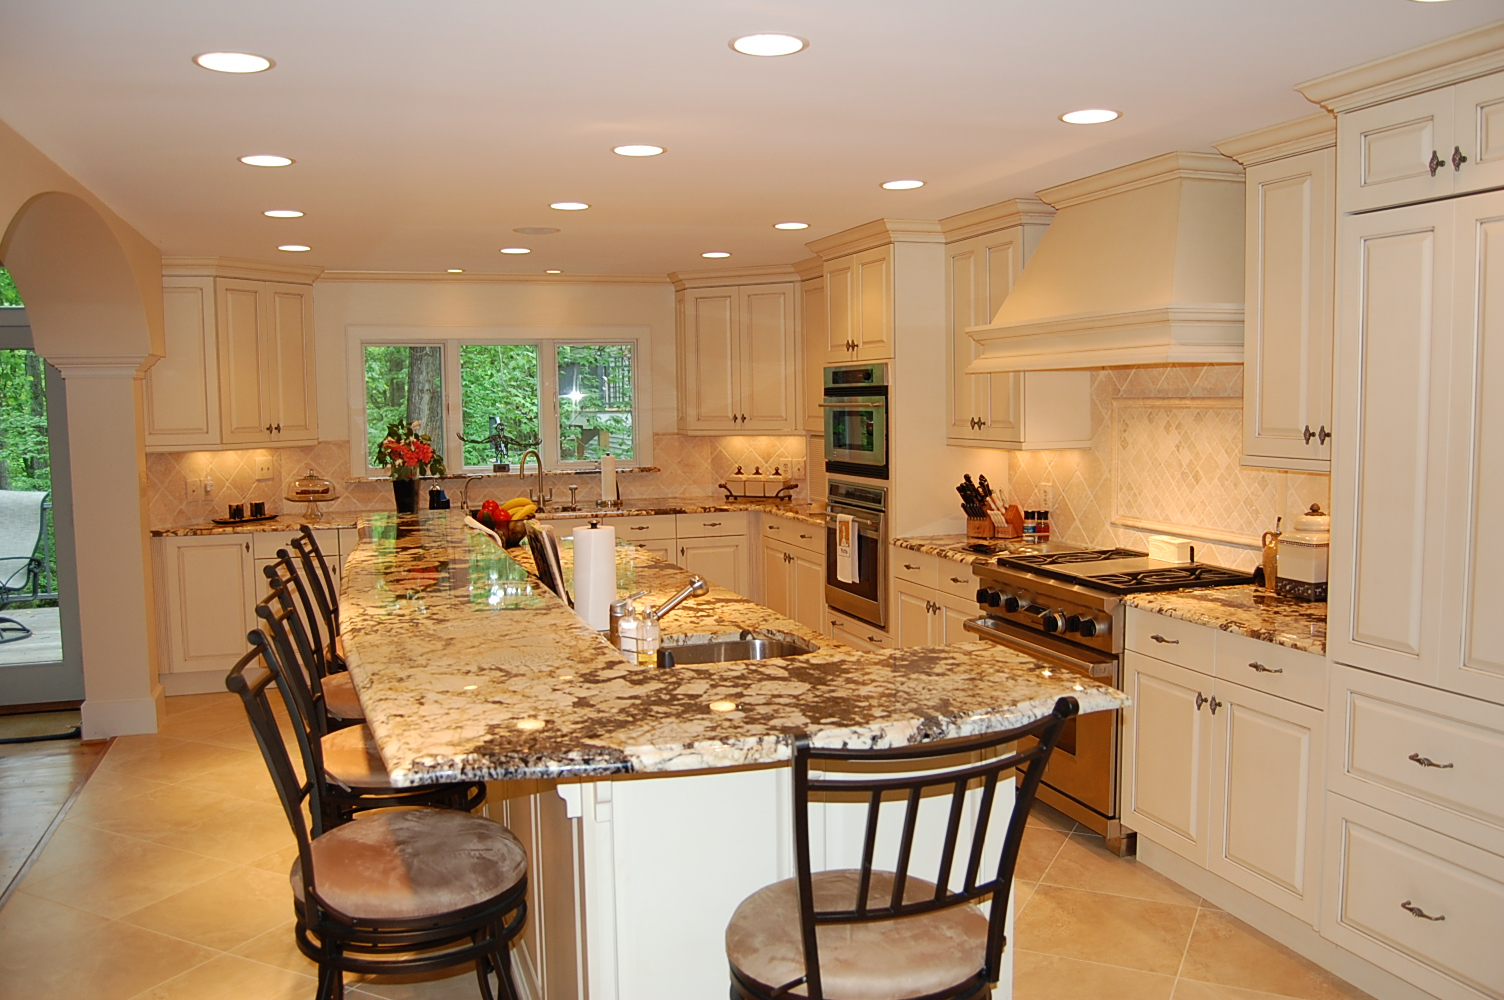 Portfolio Classic Kitchens Of Virginia - Bathroom remodeling mechanicsville va